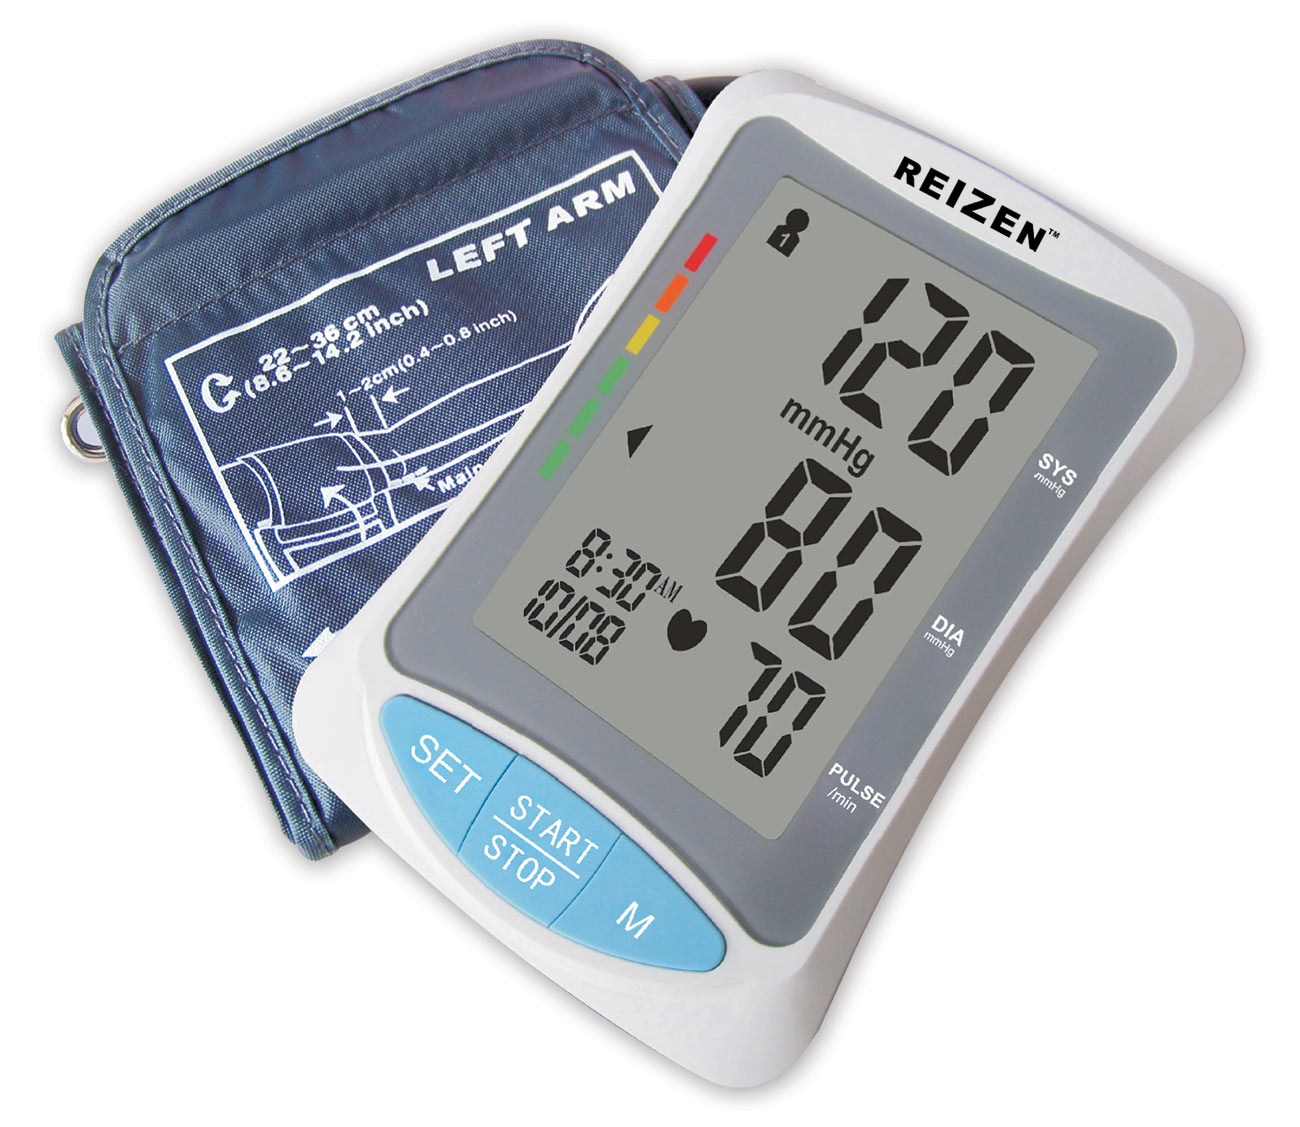 Talking Arm-Type Blood Pressure Monitor - English+Spanish